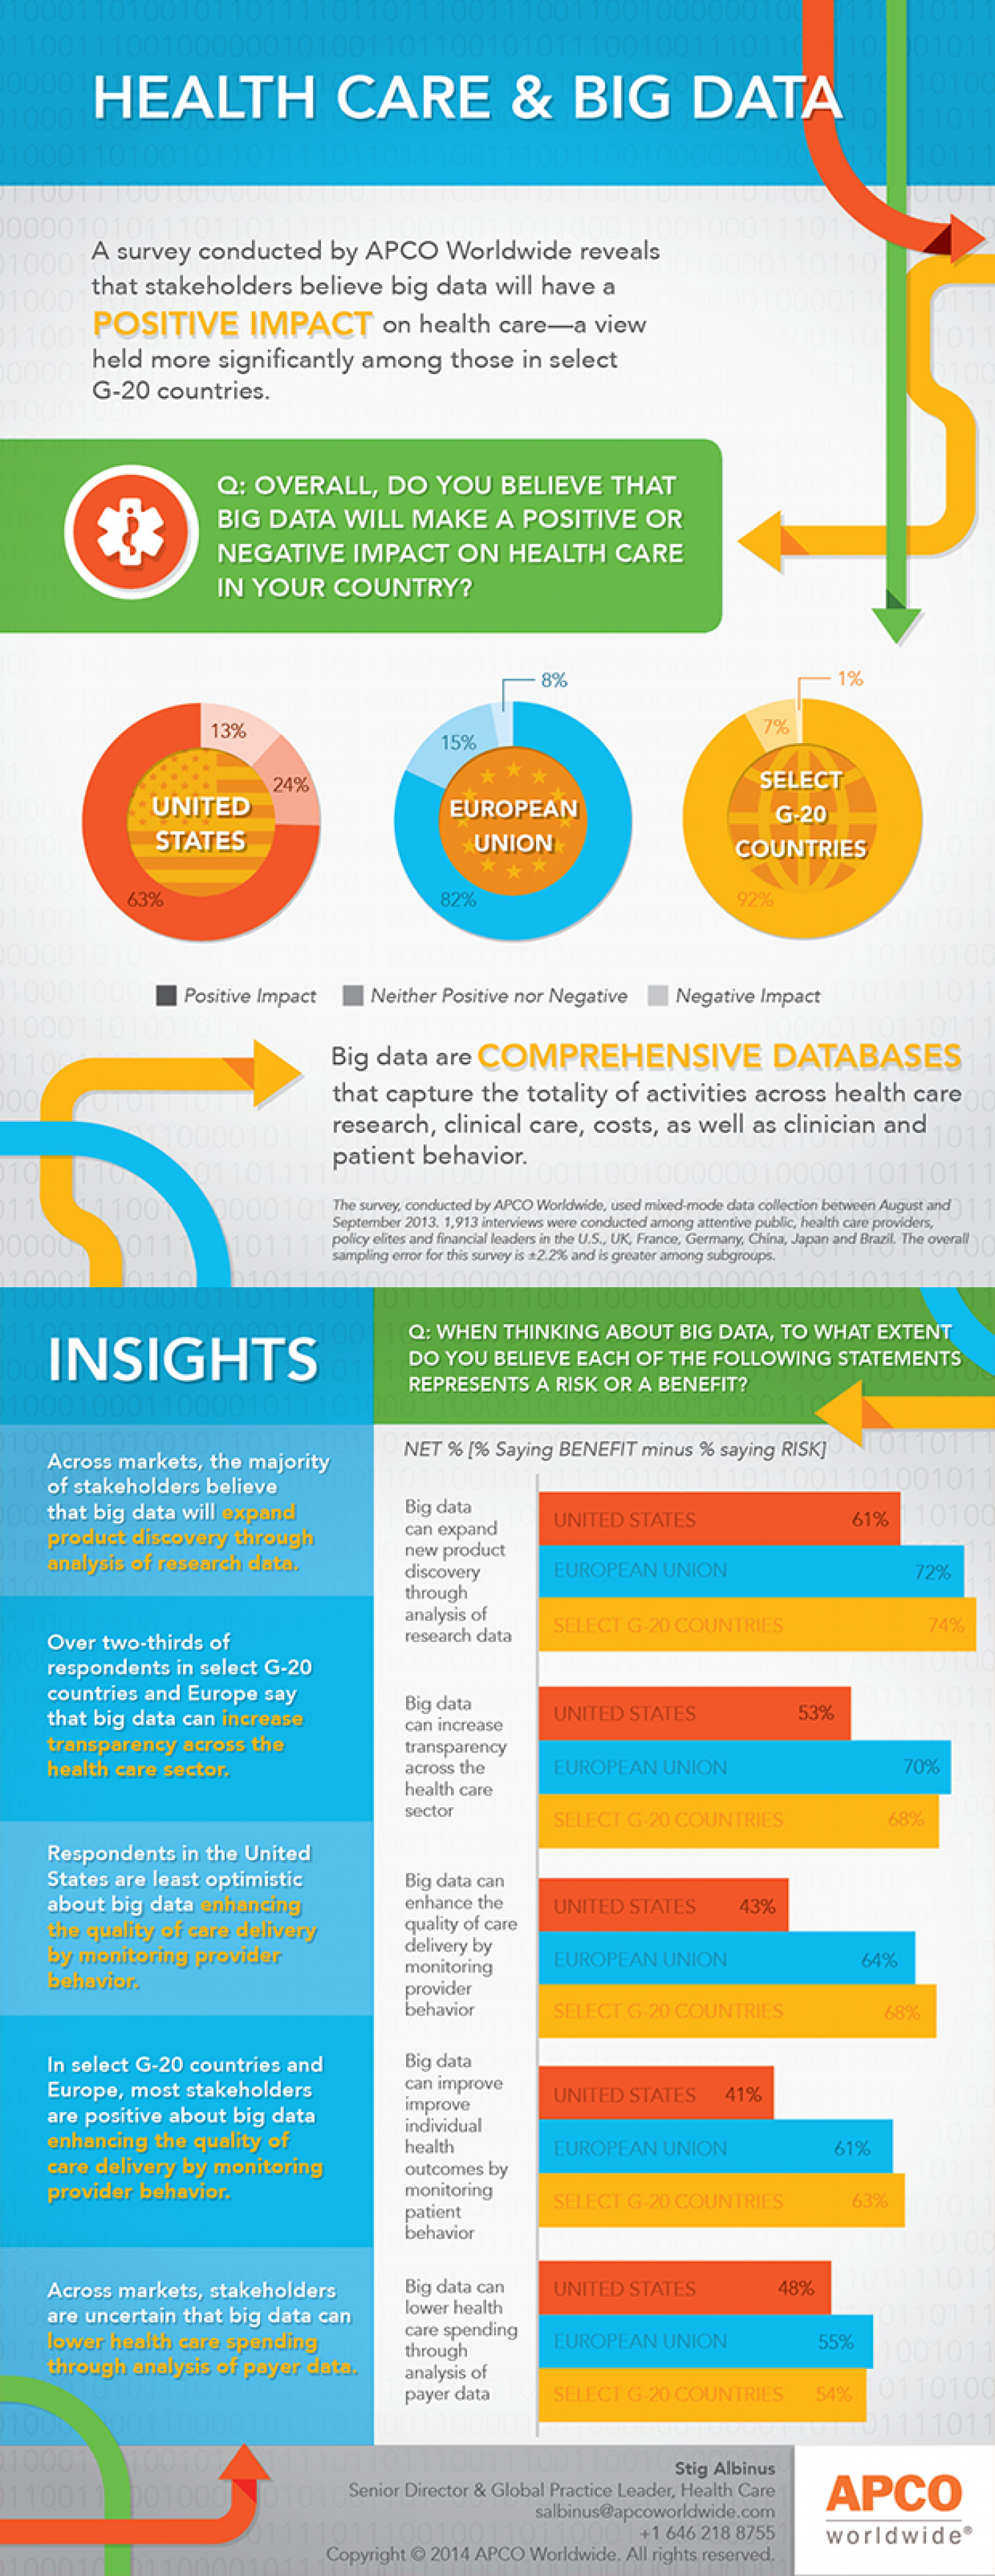 Health Care & Big Data Infographic